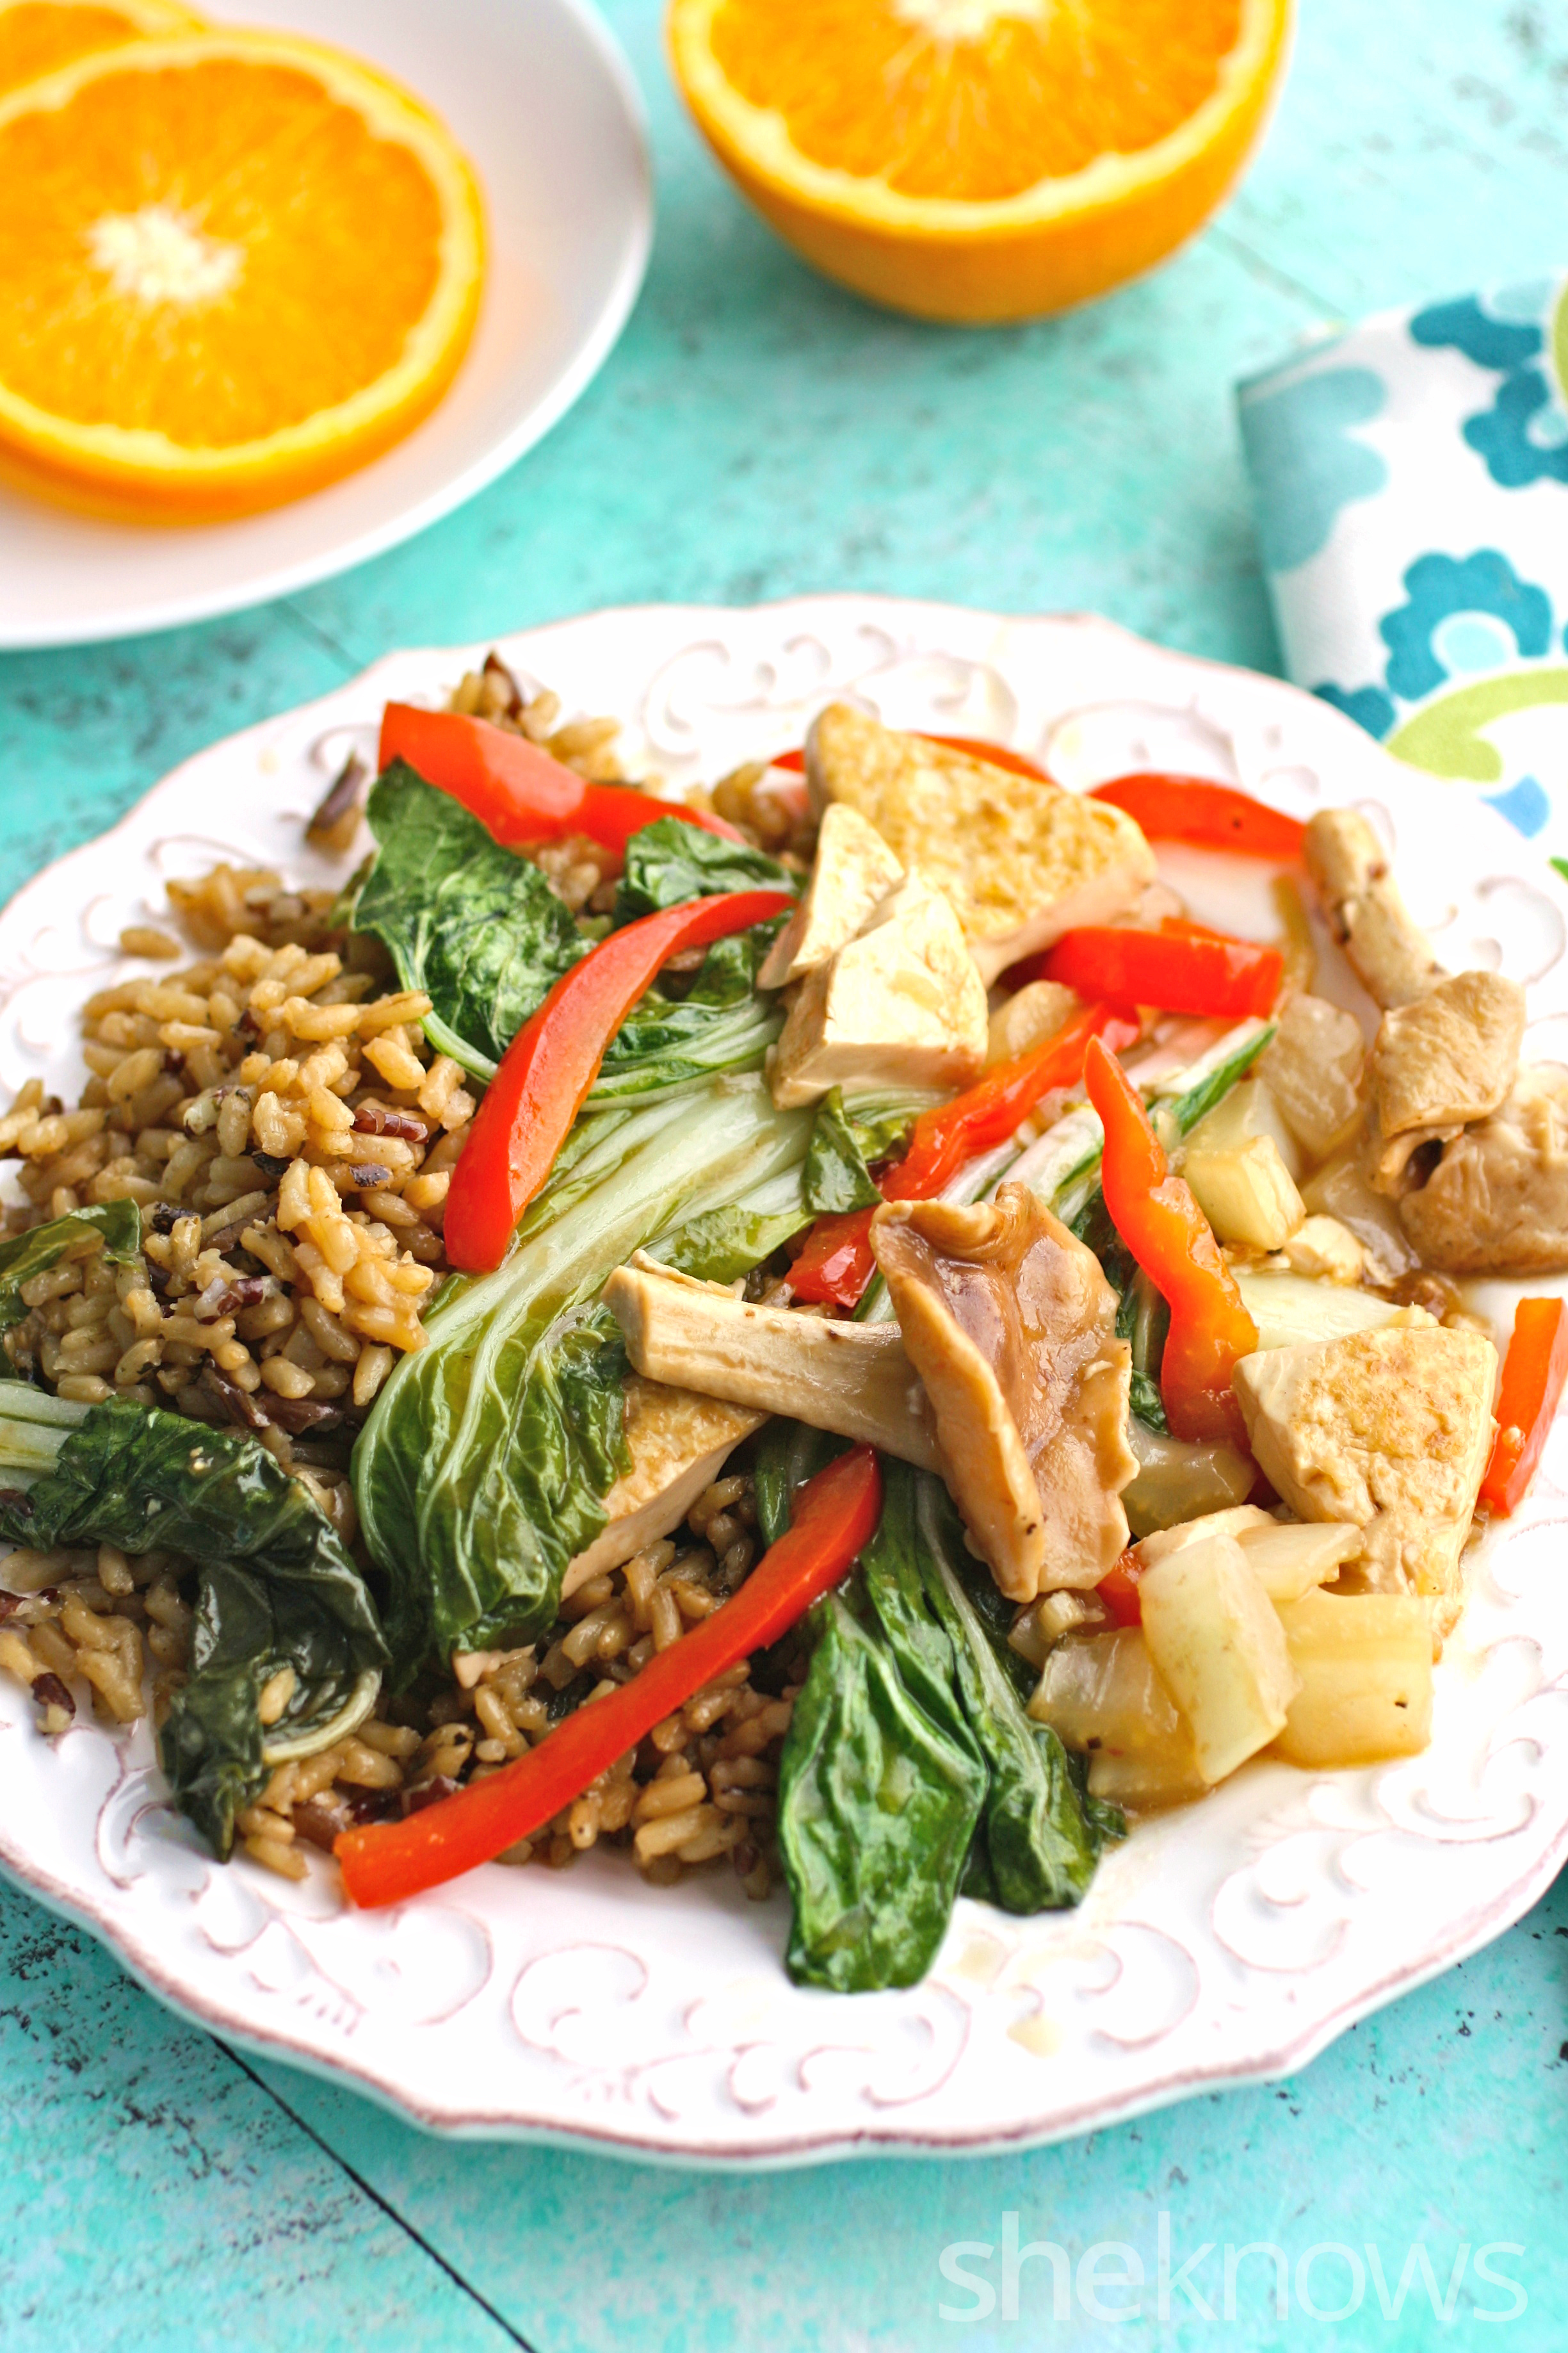 Gather a few friends for this delicious Meatless Monday dish of shiitake mushroom, bok choy, and tofu stir-fry!